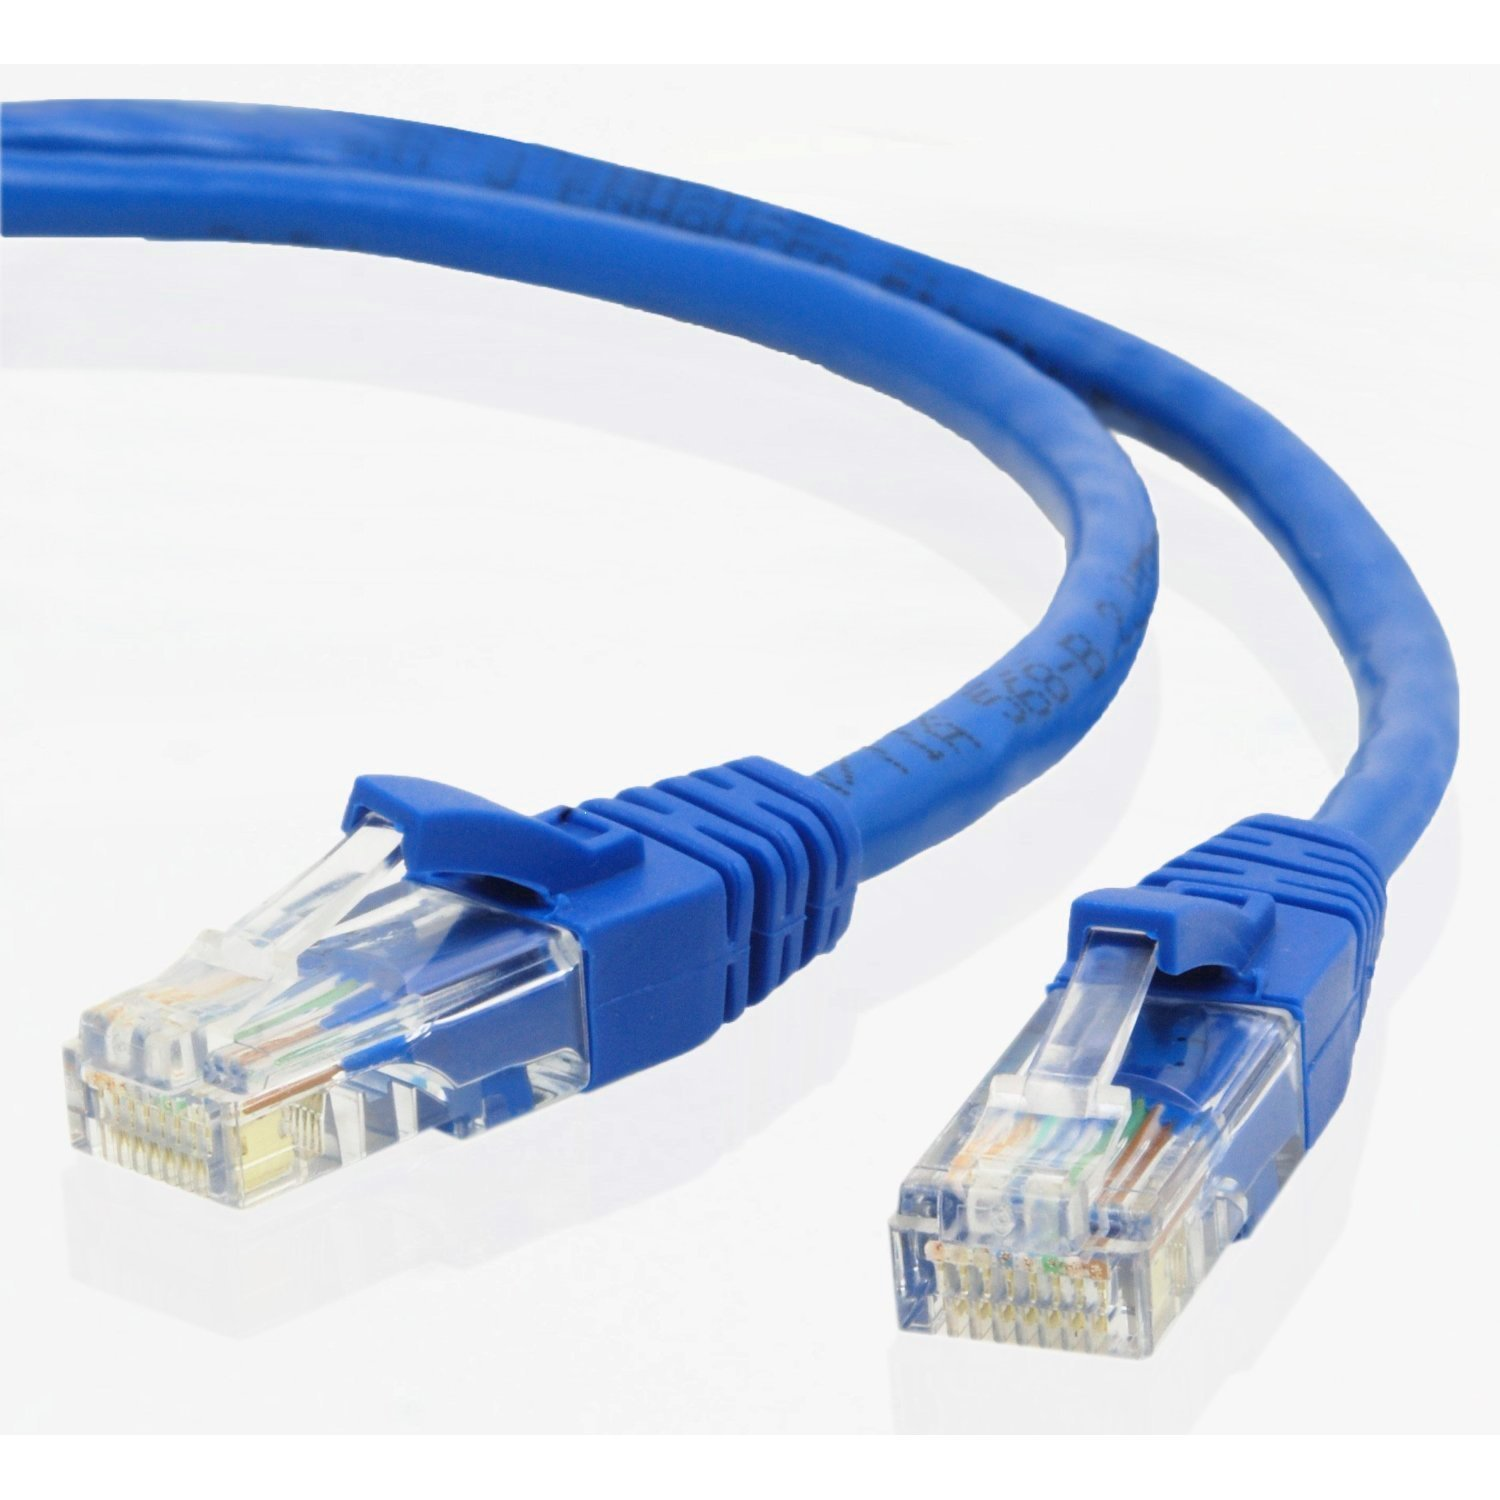 Swell Blue Gold Plated 50Ft Cat5 Cat5E Rj45 Patch Ethernet Network Cable Wiring Digital Resources Spoatbouhousnl